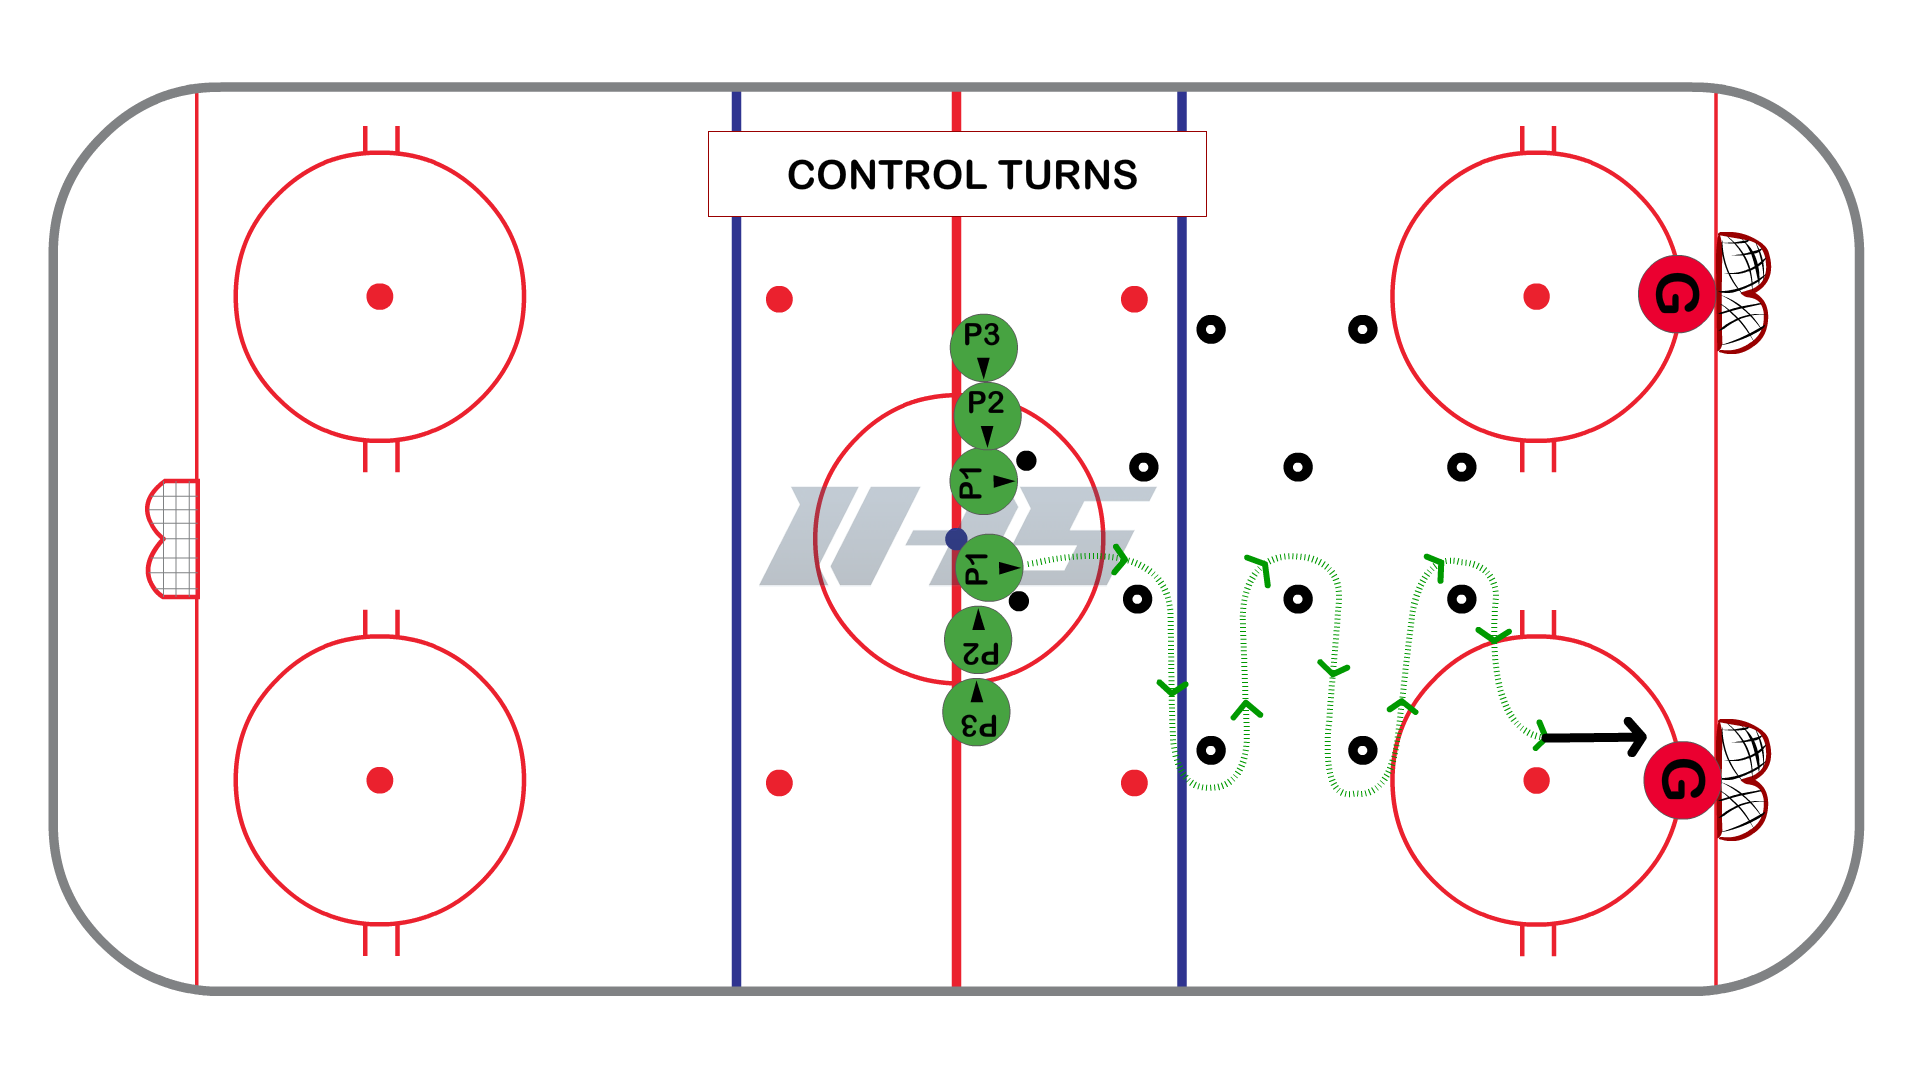 Half Ice Side By Side Skills Series #1 - Control Turns